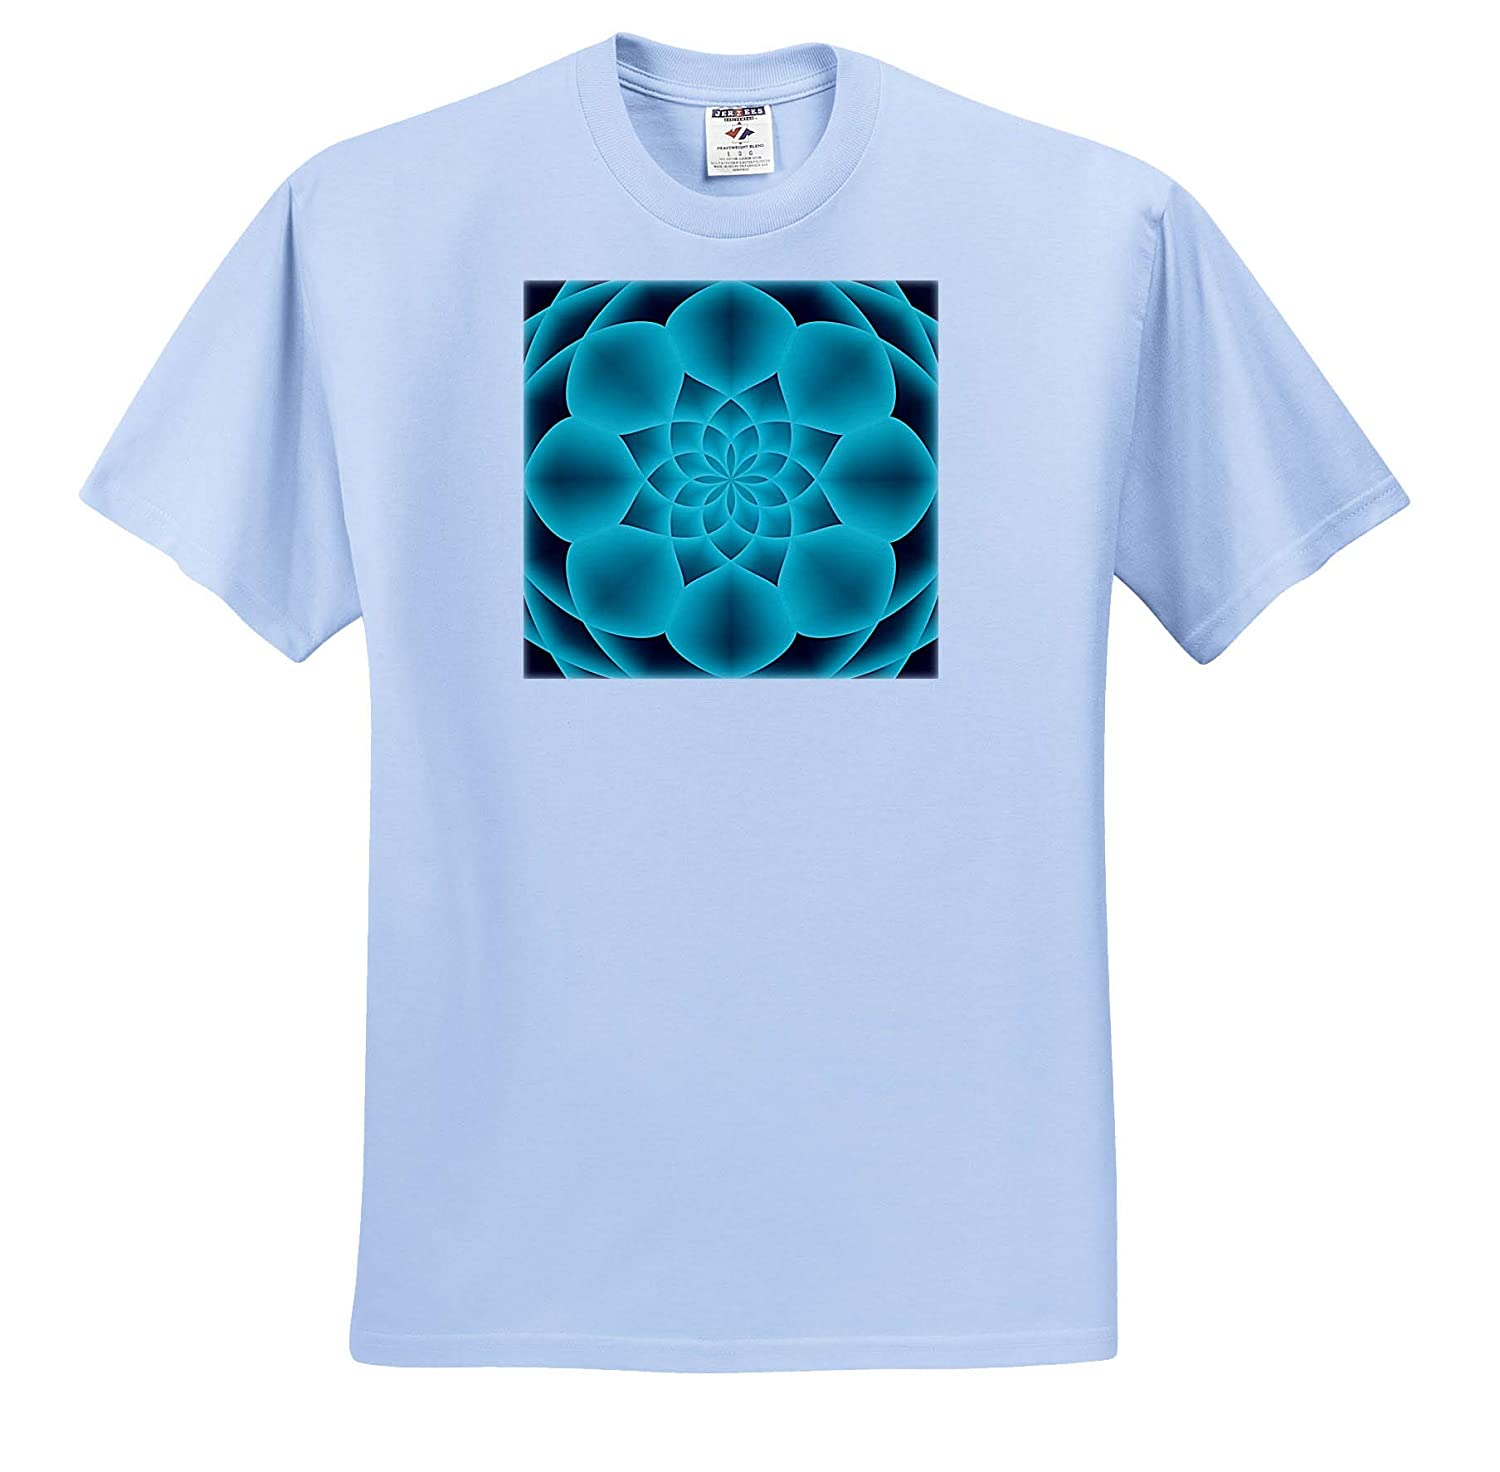 T-Shirts Symmetrical Modern Abstract Design in Shades of Turquoise 3dRose Andrea Haase Abstract Art and Design